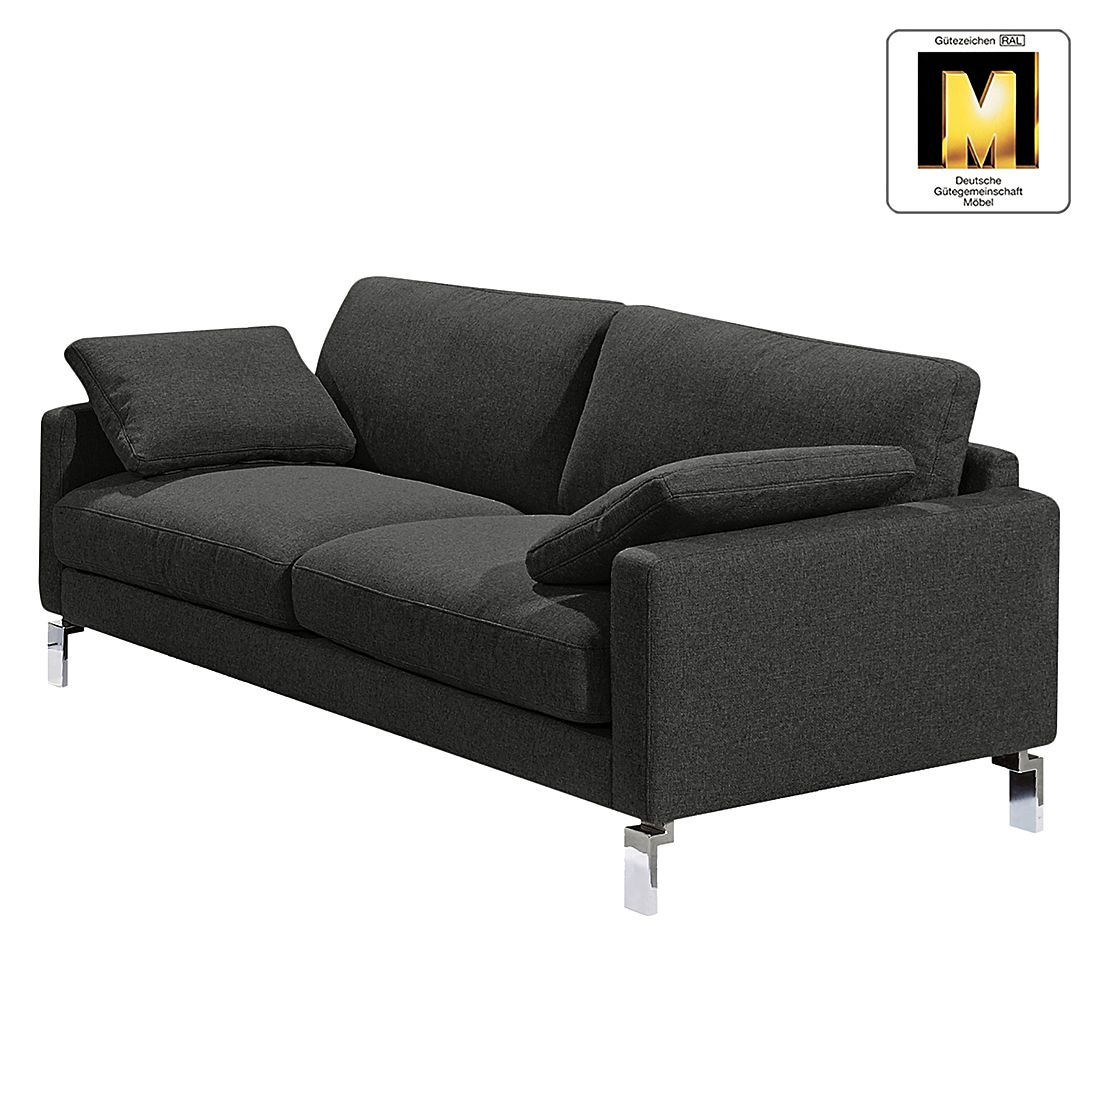 sofa casual line iv 3 sitzer strukturstoff anthrazit claas claasen kaufen. Black Bedroom Furniture Sets. Home Design Ideas